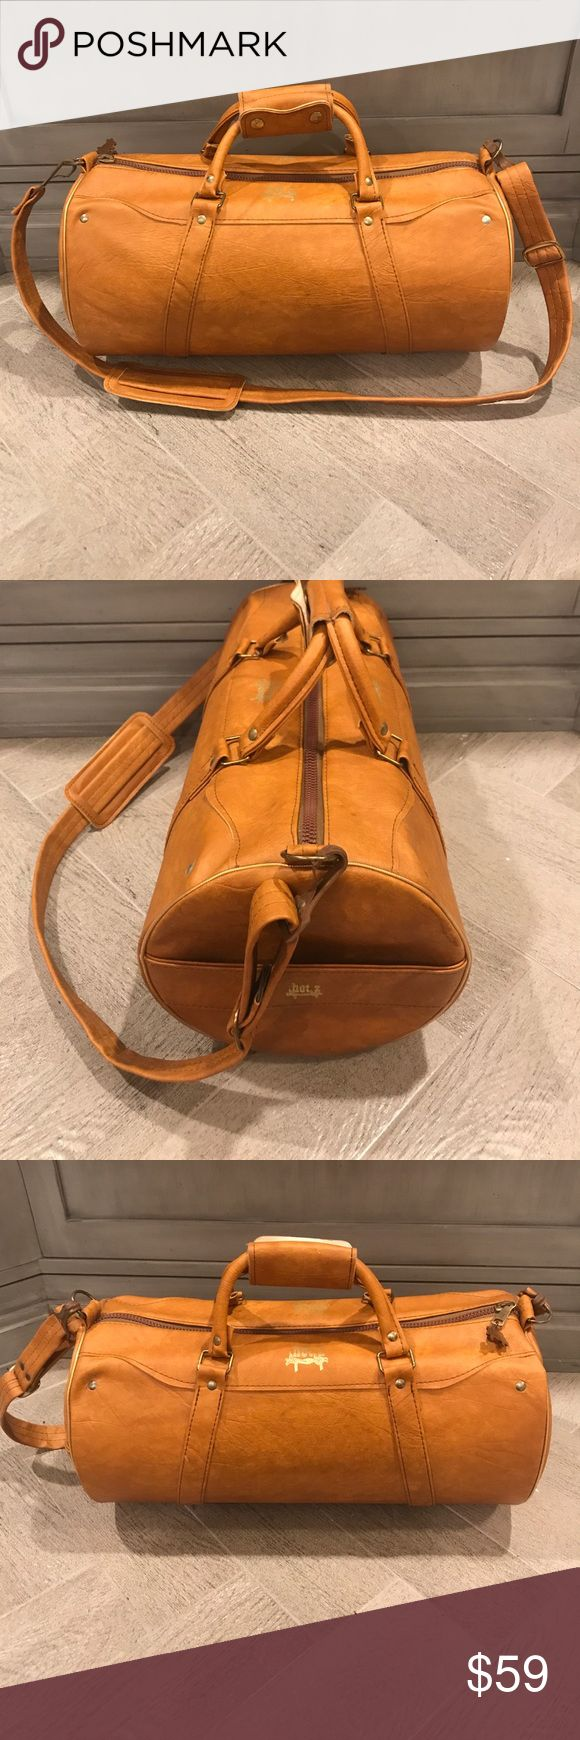 Vintage hot z  cylindrical bag As new as you could wish for in a vintage bag. Unique cylindrical shape stands out from the crowd. Would make a stylish carry-on. Saddle color durable vinyl. Bags Luggage & Travel Bags